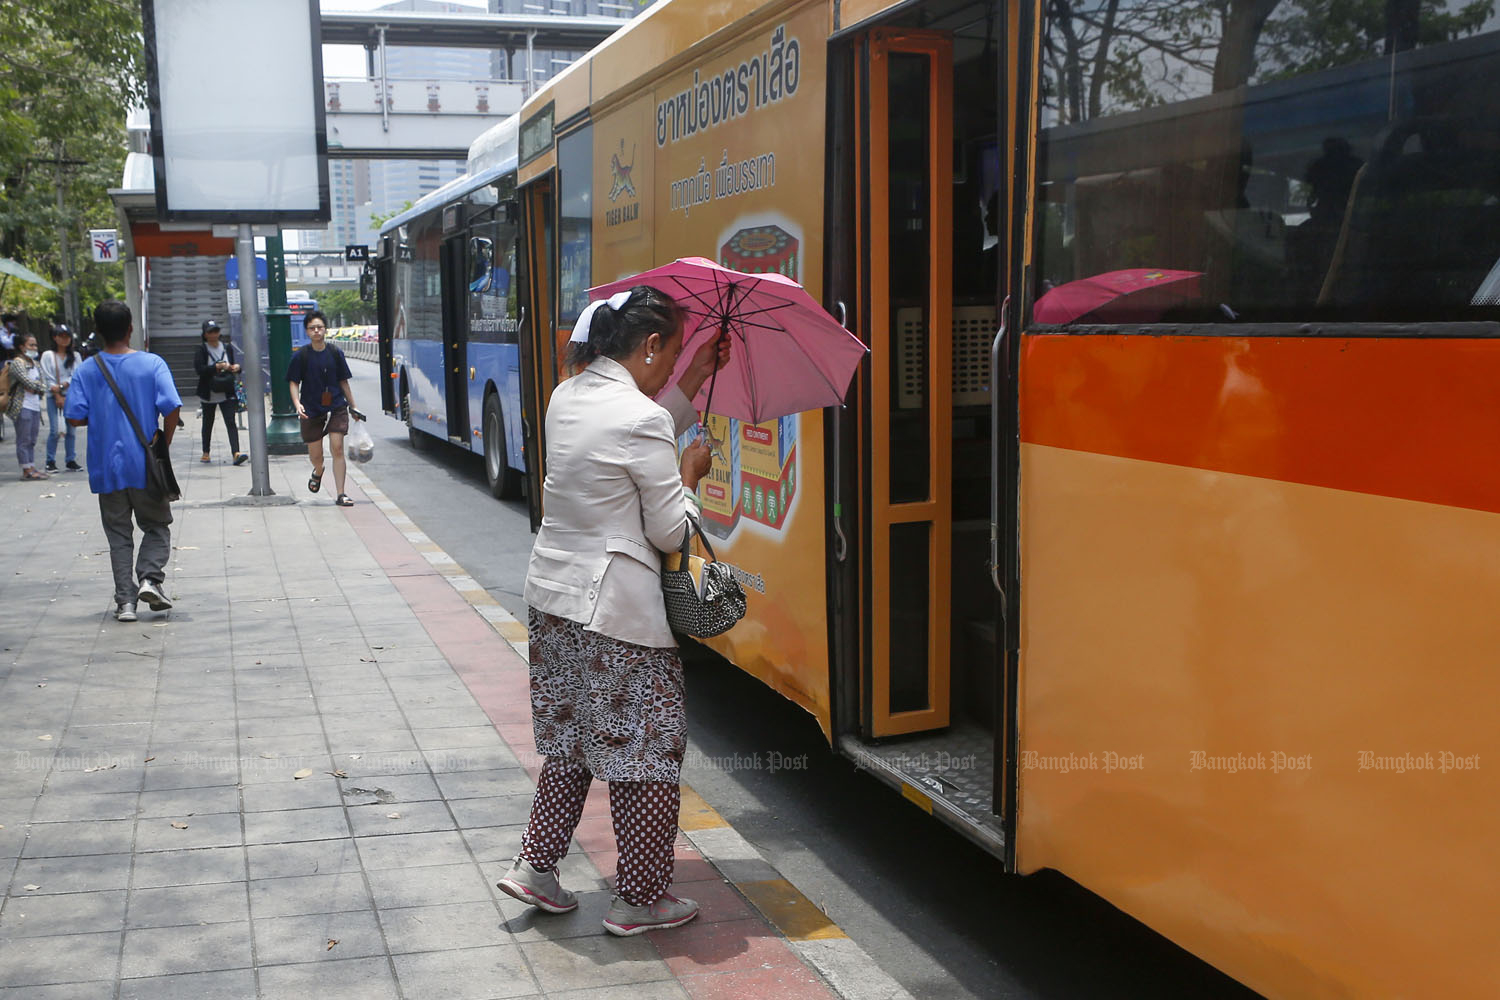 The Bangkok Mass Transit Authority will raise the price of weekly and monthly tickets for its bus services on July 5. (Bangkok Post photo)